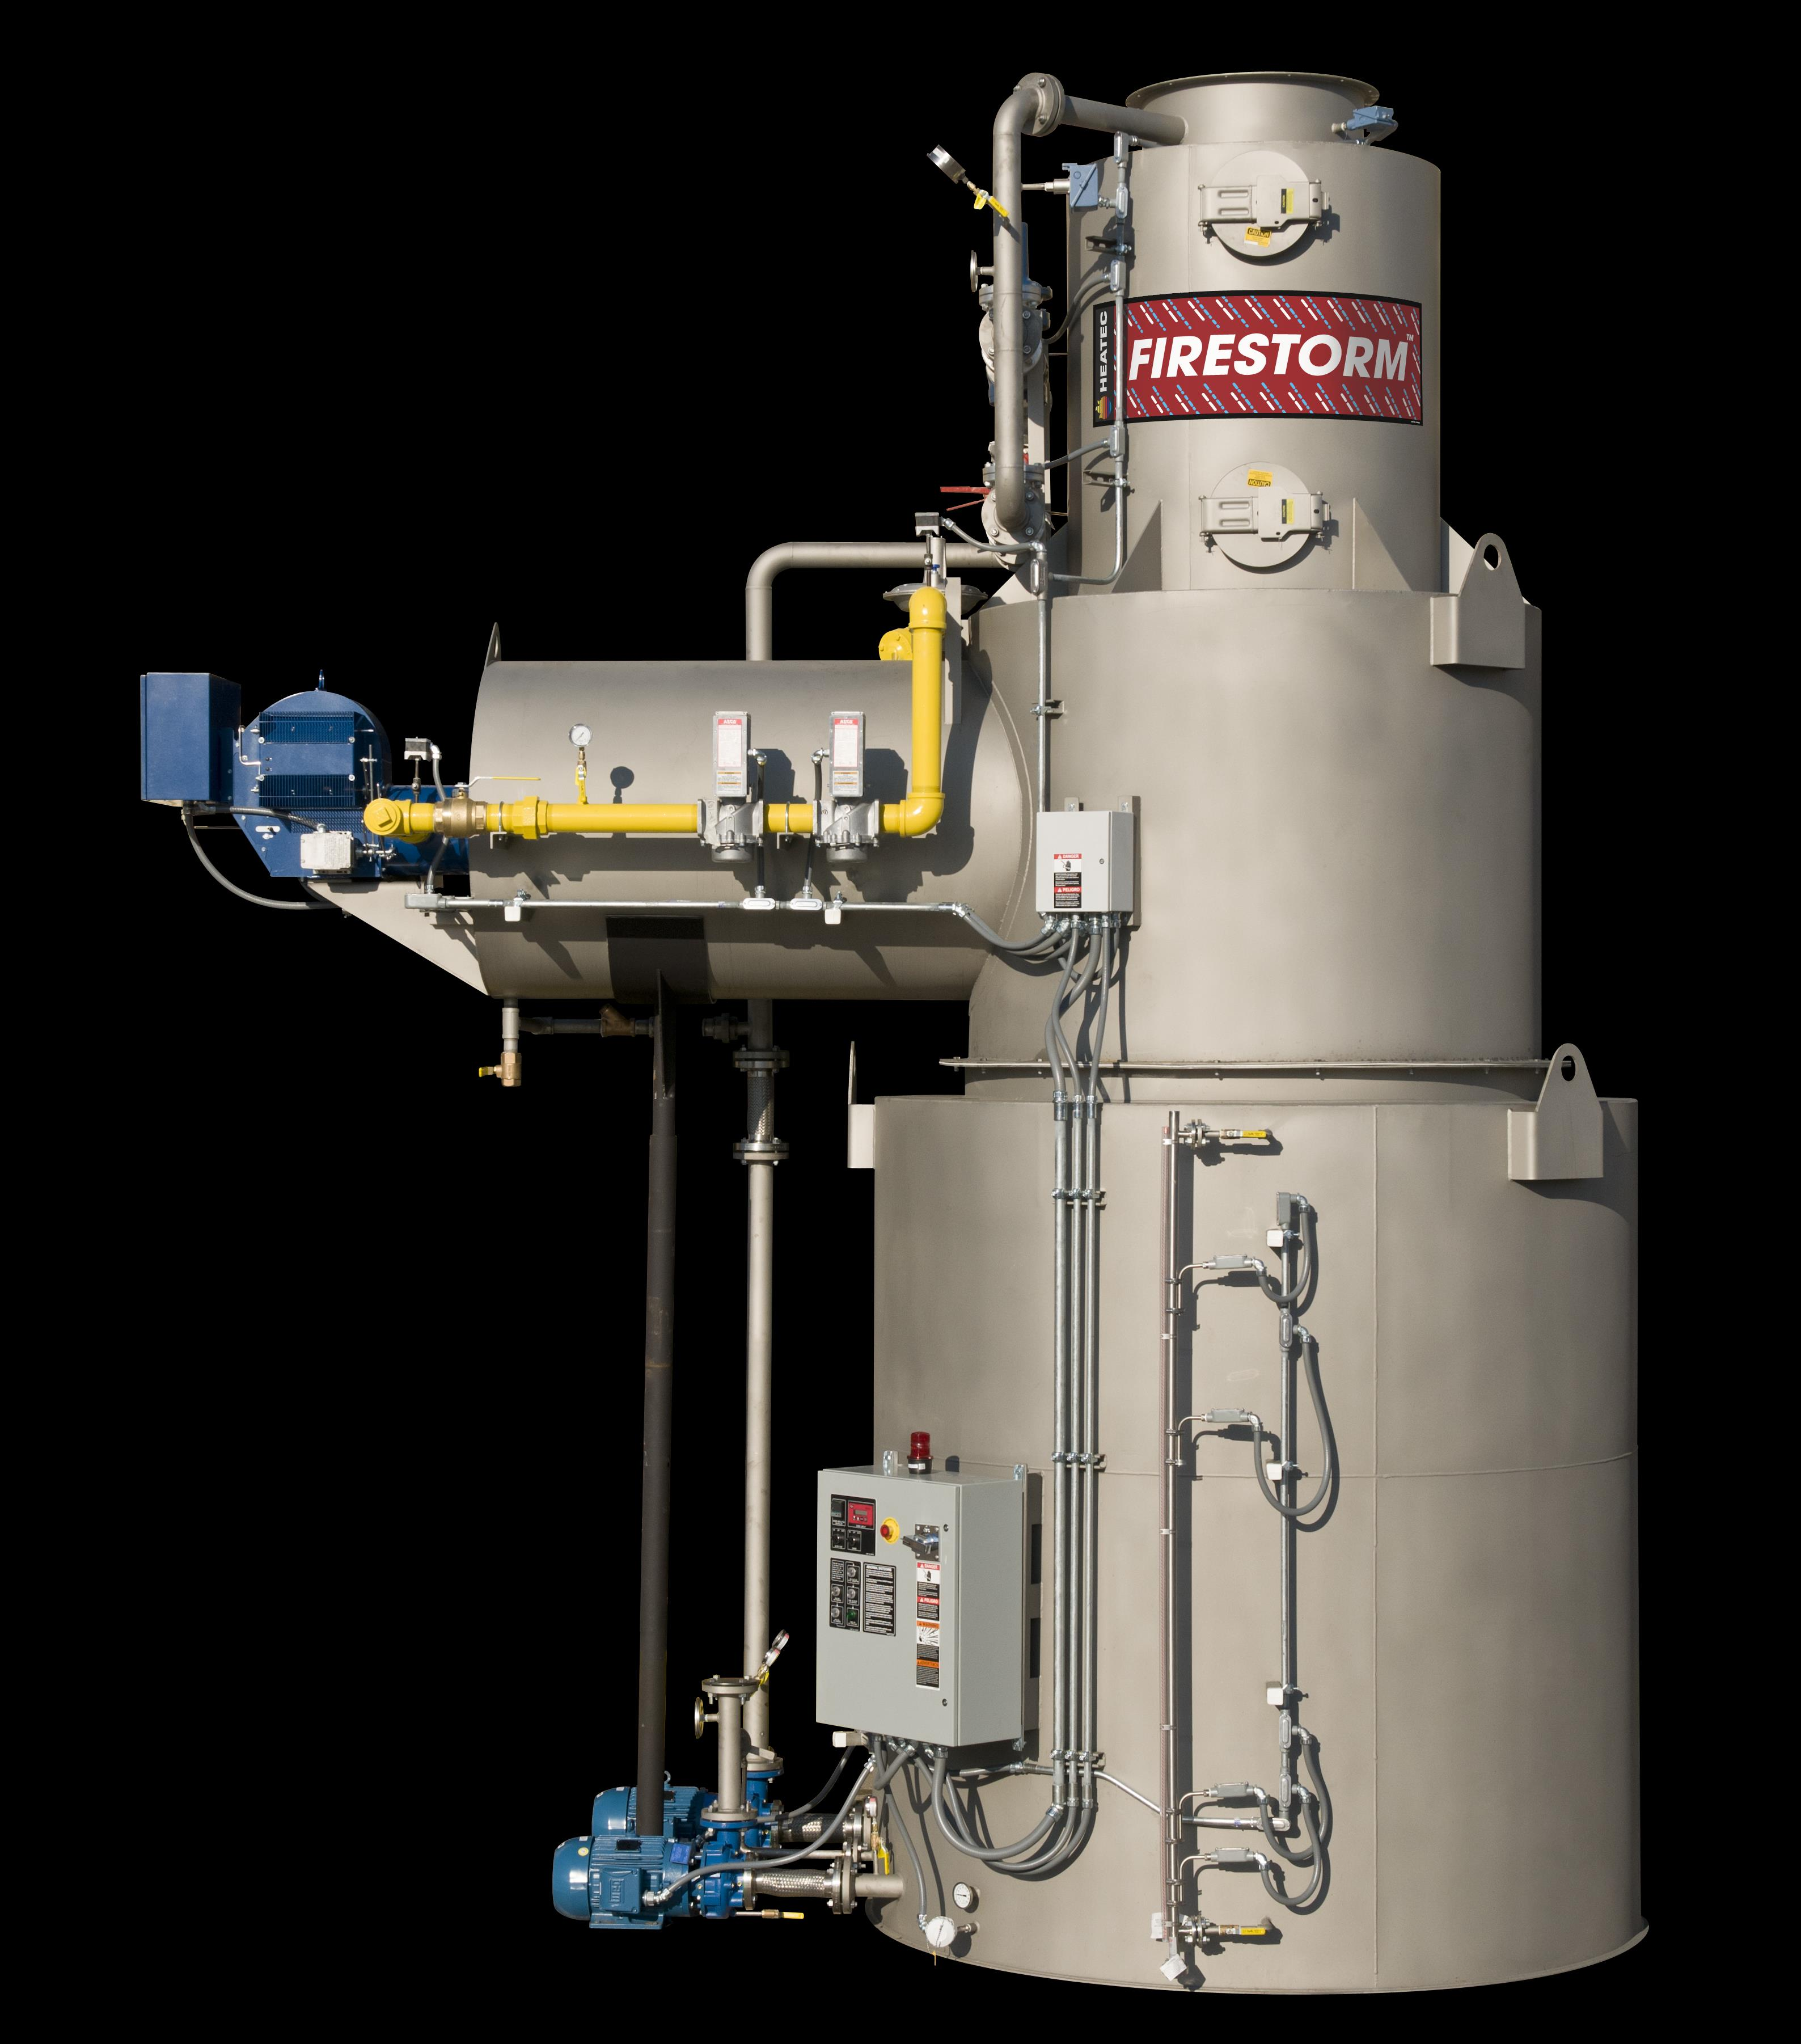 Heatec Firestorm Water Heater